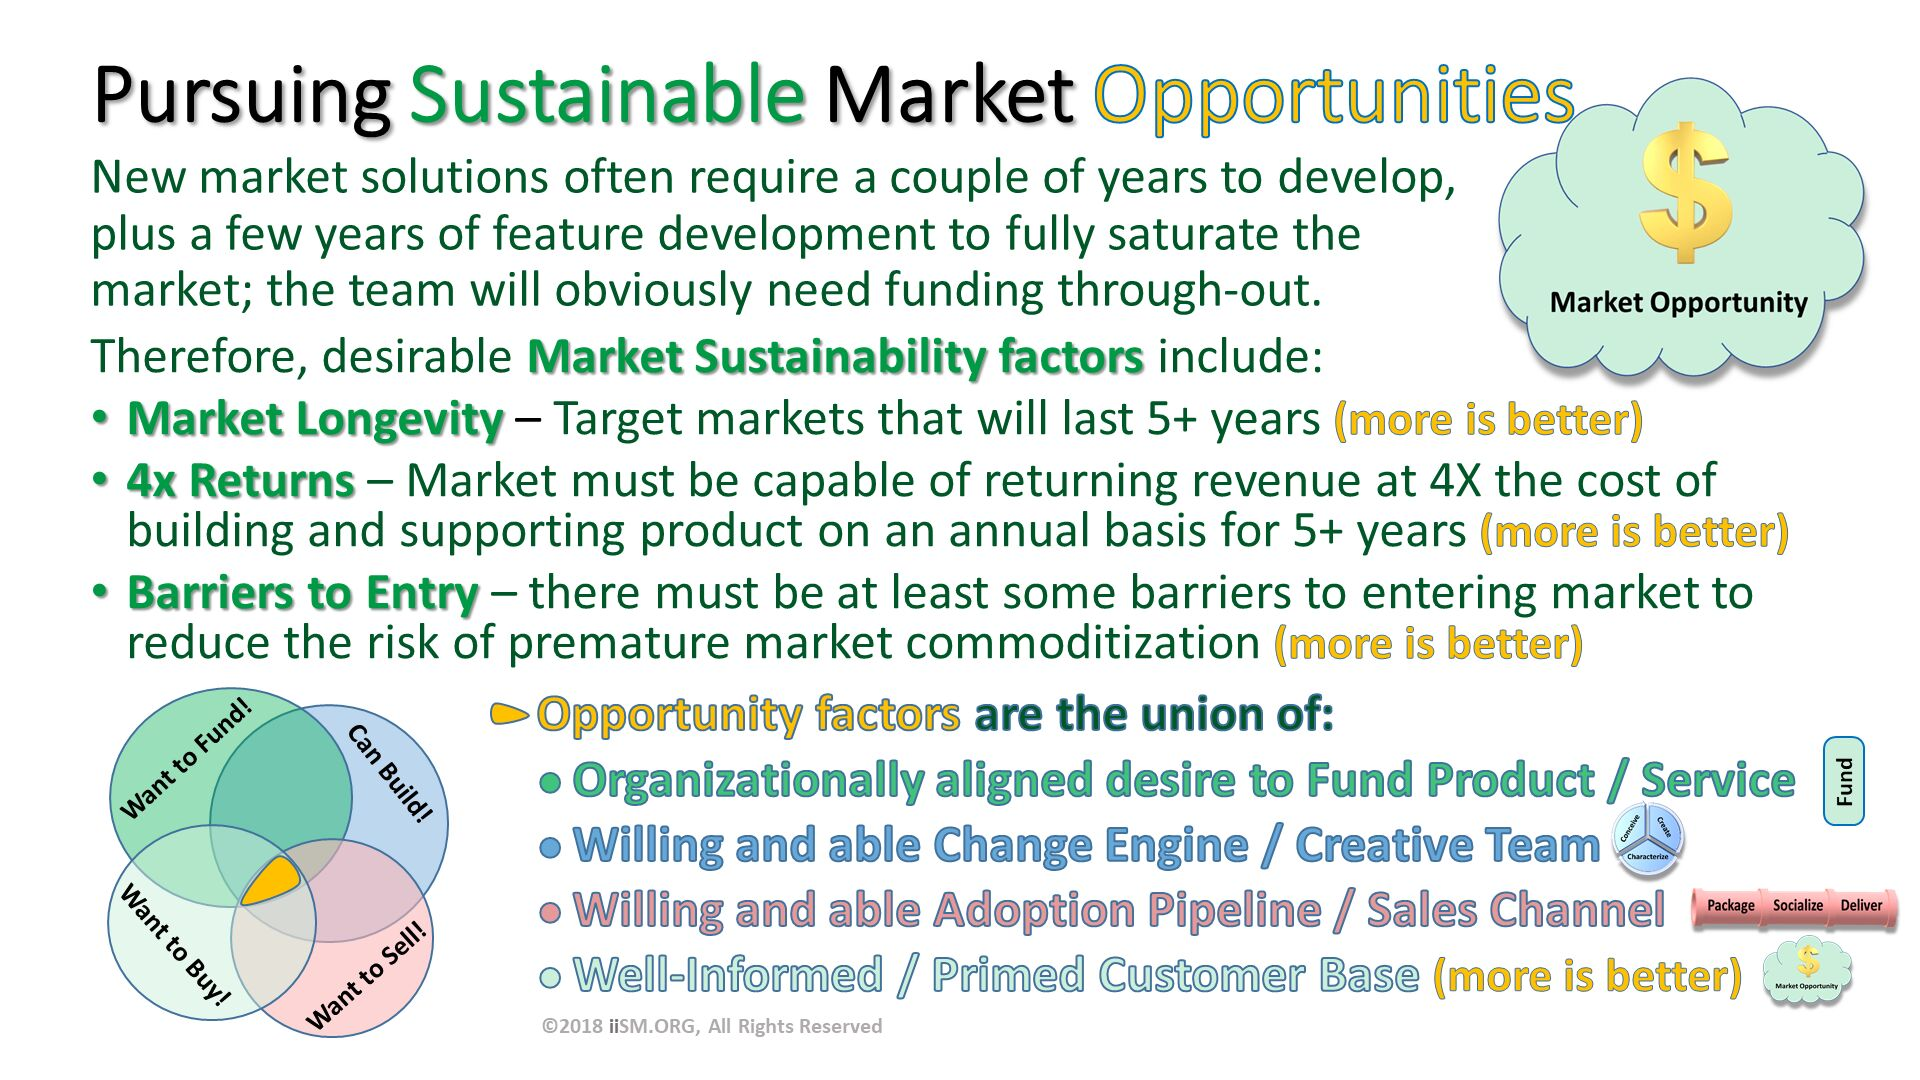 Therefore, desirable Market Sustainability factors include: Market Longevity – Target markets that will last 5+ years (more is better) 4x Returns – Market must be capable of returning revenue at 4X the cost of building and supporting product on an annual basis for 5+ years (more is better) Barriers to Entry – there must be at least some barriers to entering market to reduce the risk of premature market commoditization (more is better) . Pursuing Sustainable Market Opportunities. New market solutions often require a couple of years to develop, plus a few years of feature development to fully saturate the market; the team will obviously need funding through-out. . ©2018 iiSM.ORG, All Rights Reserved. Fund.